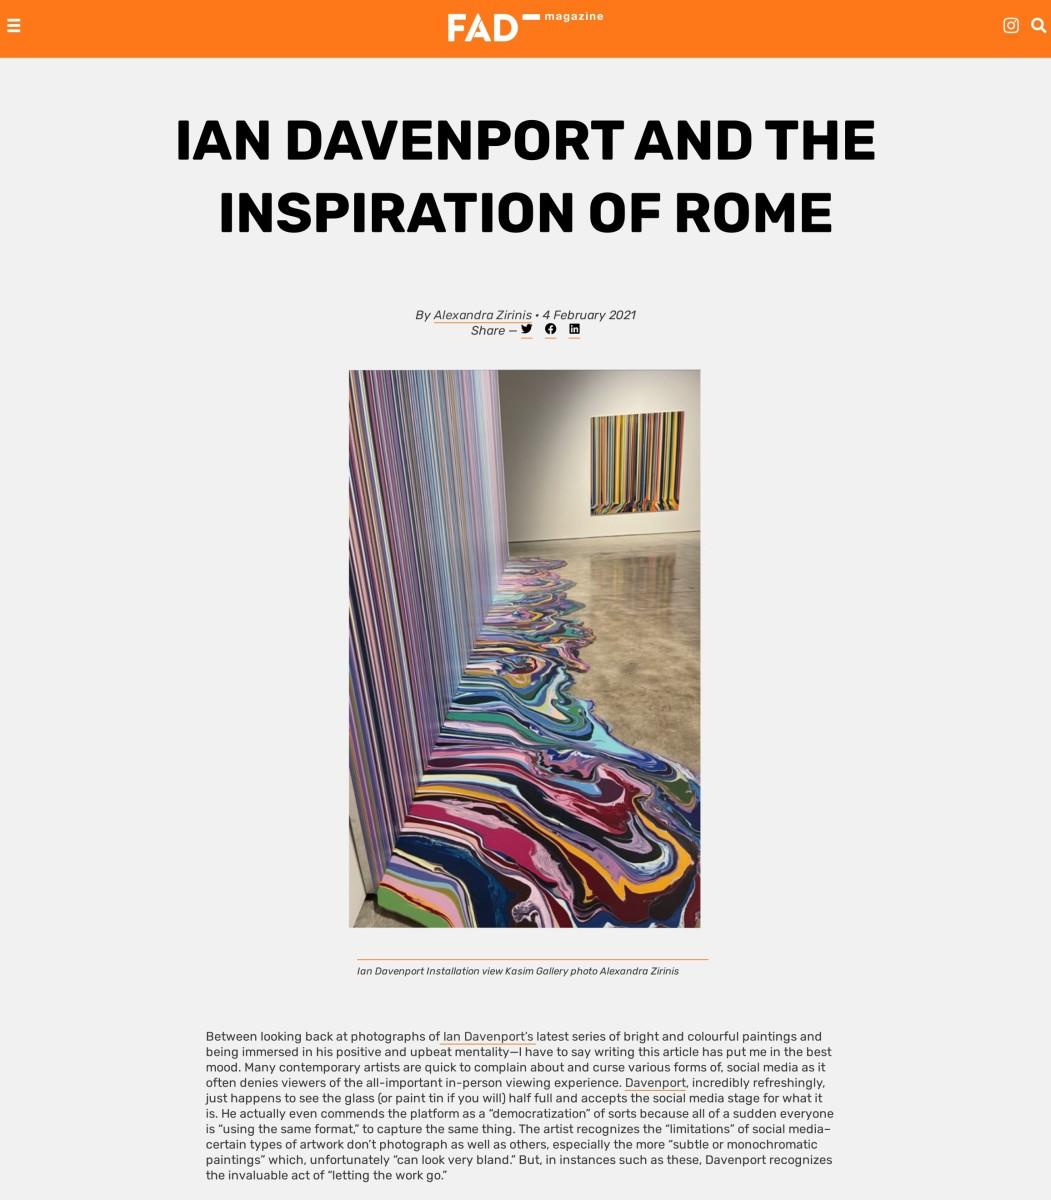 Ian Davenport and the Inspiration of Rome Part 1